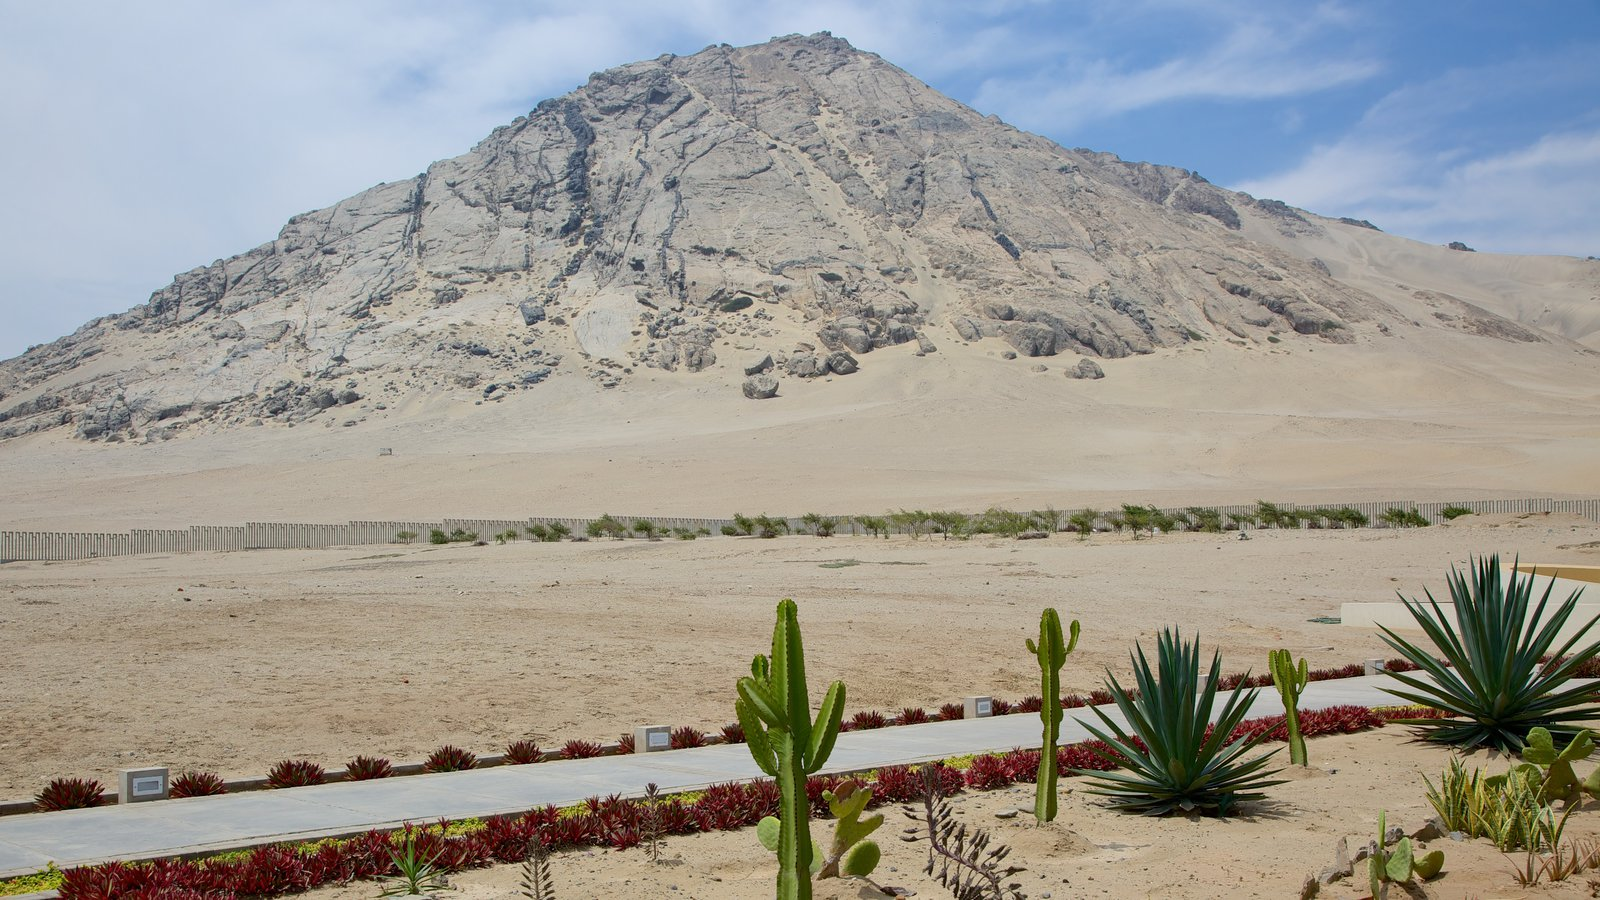 Huaca de la Luna showing mountains, desert views and landscape views